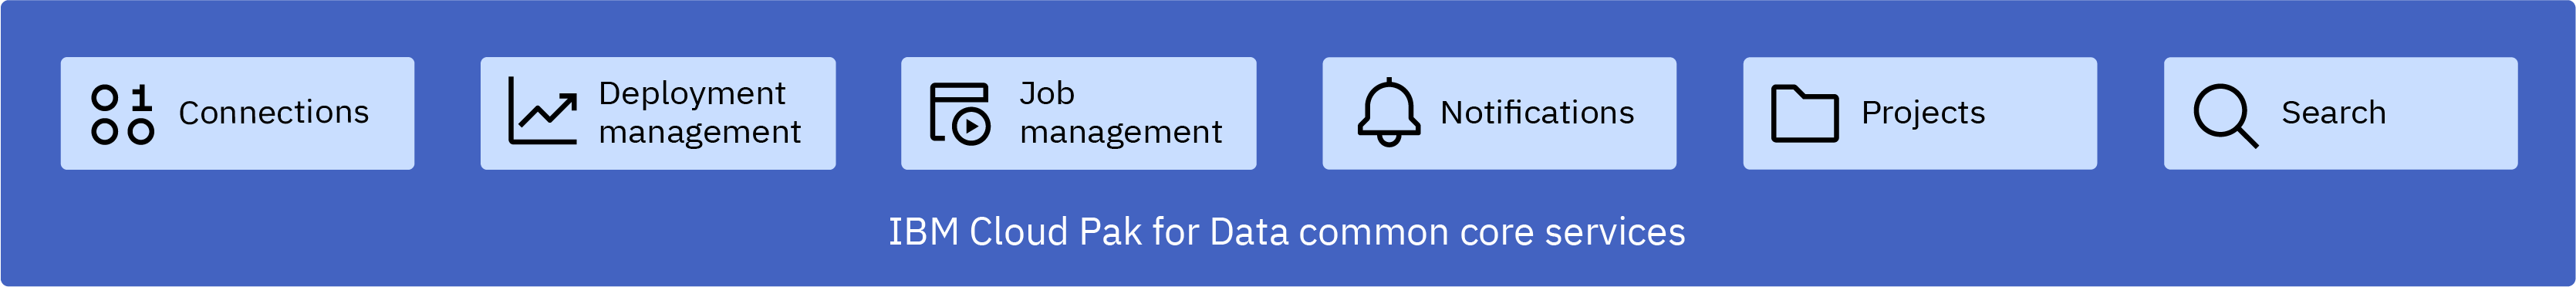 Image depicting the features provided by the Cloud Pak for Datacommon core services. The features are listed in the preceding text. [